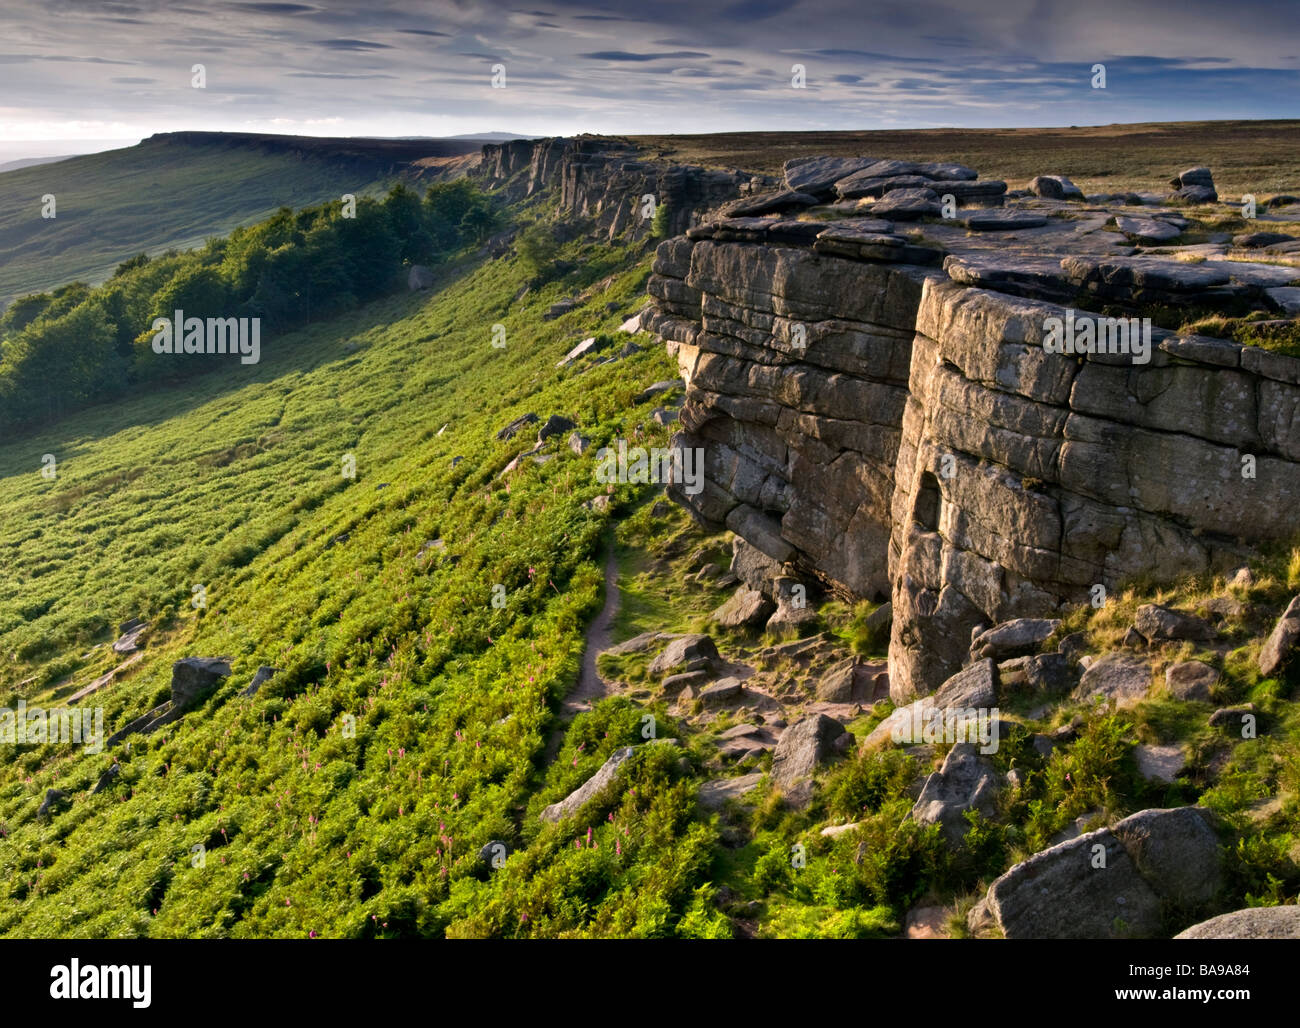 Evening Light on Stanage Edge, Peak District National Park, Derbyshire, England, UK - Stock Image